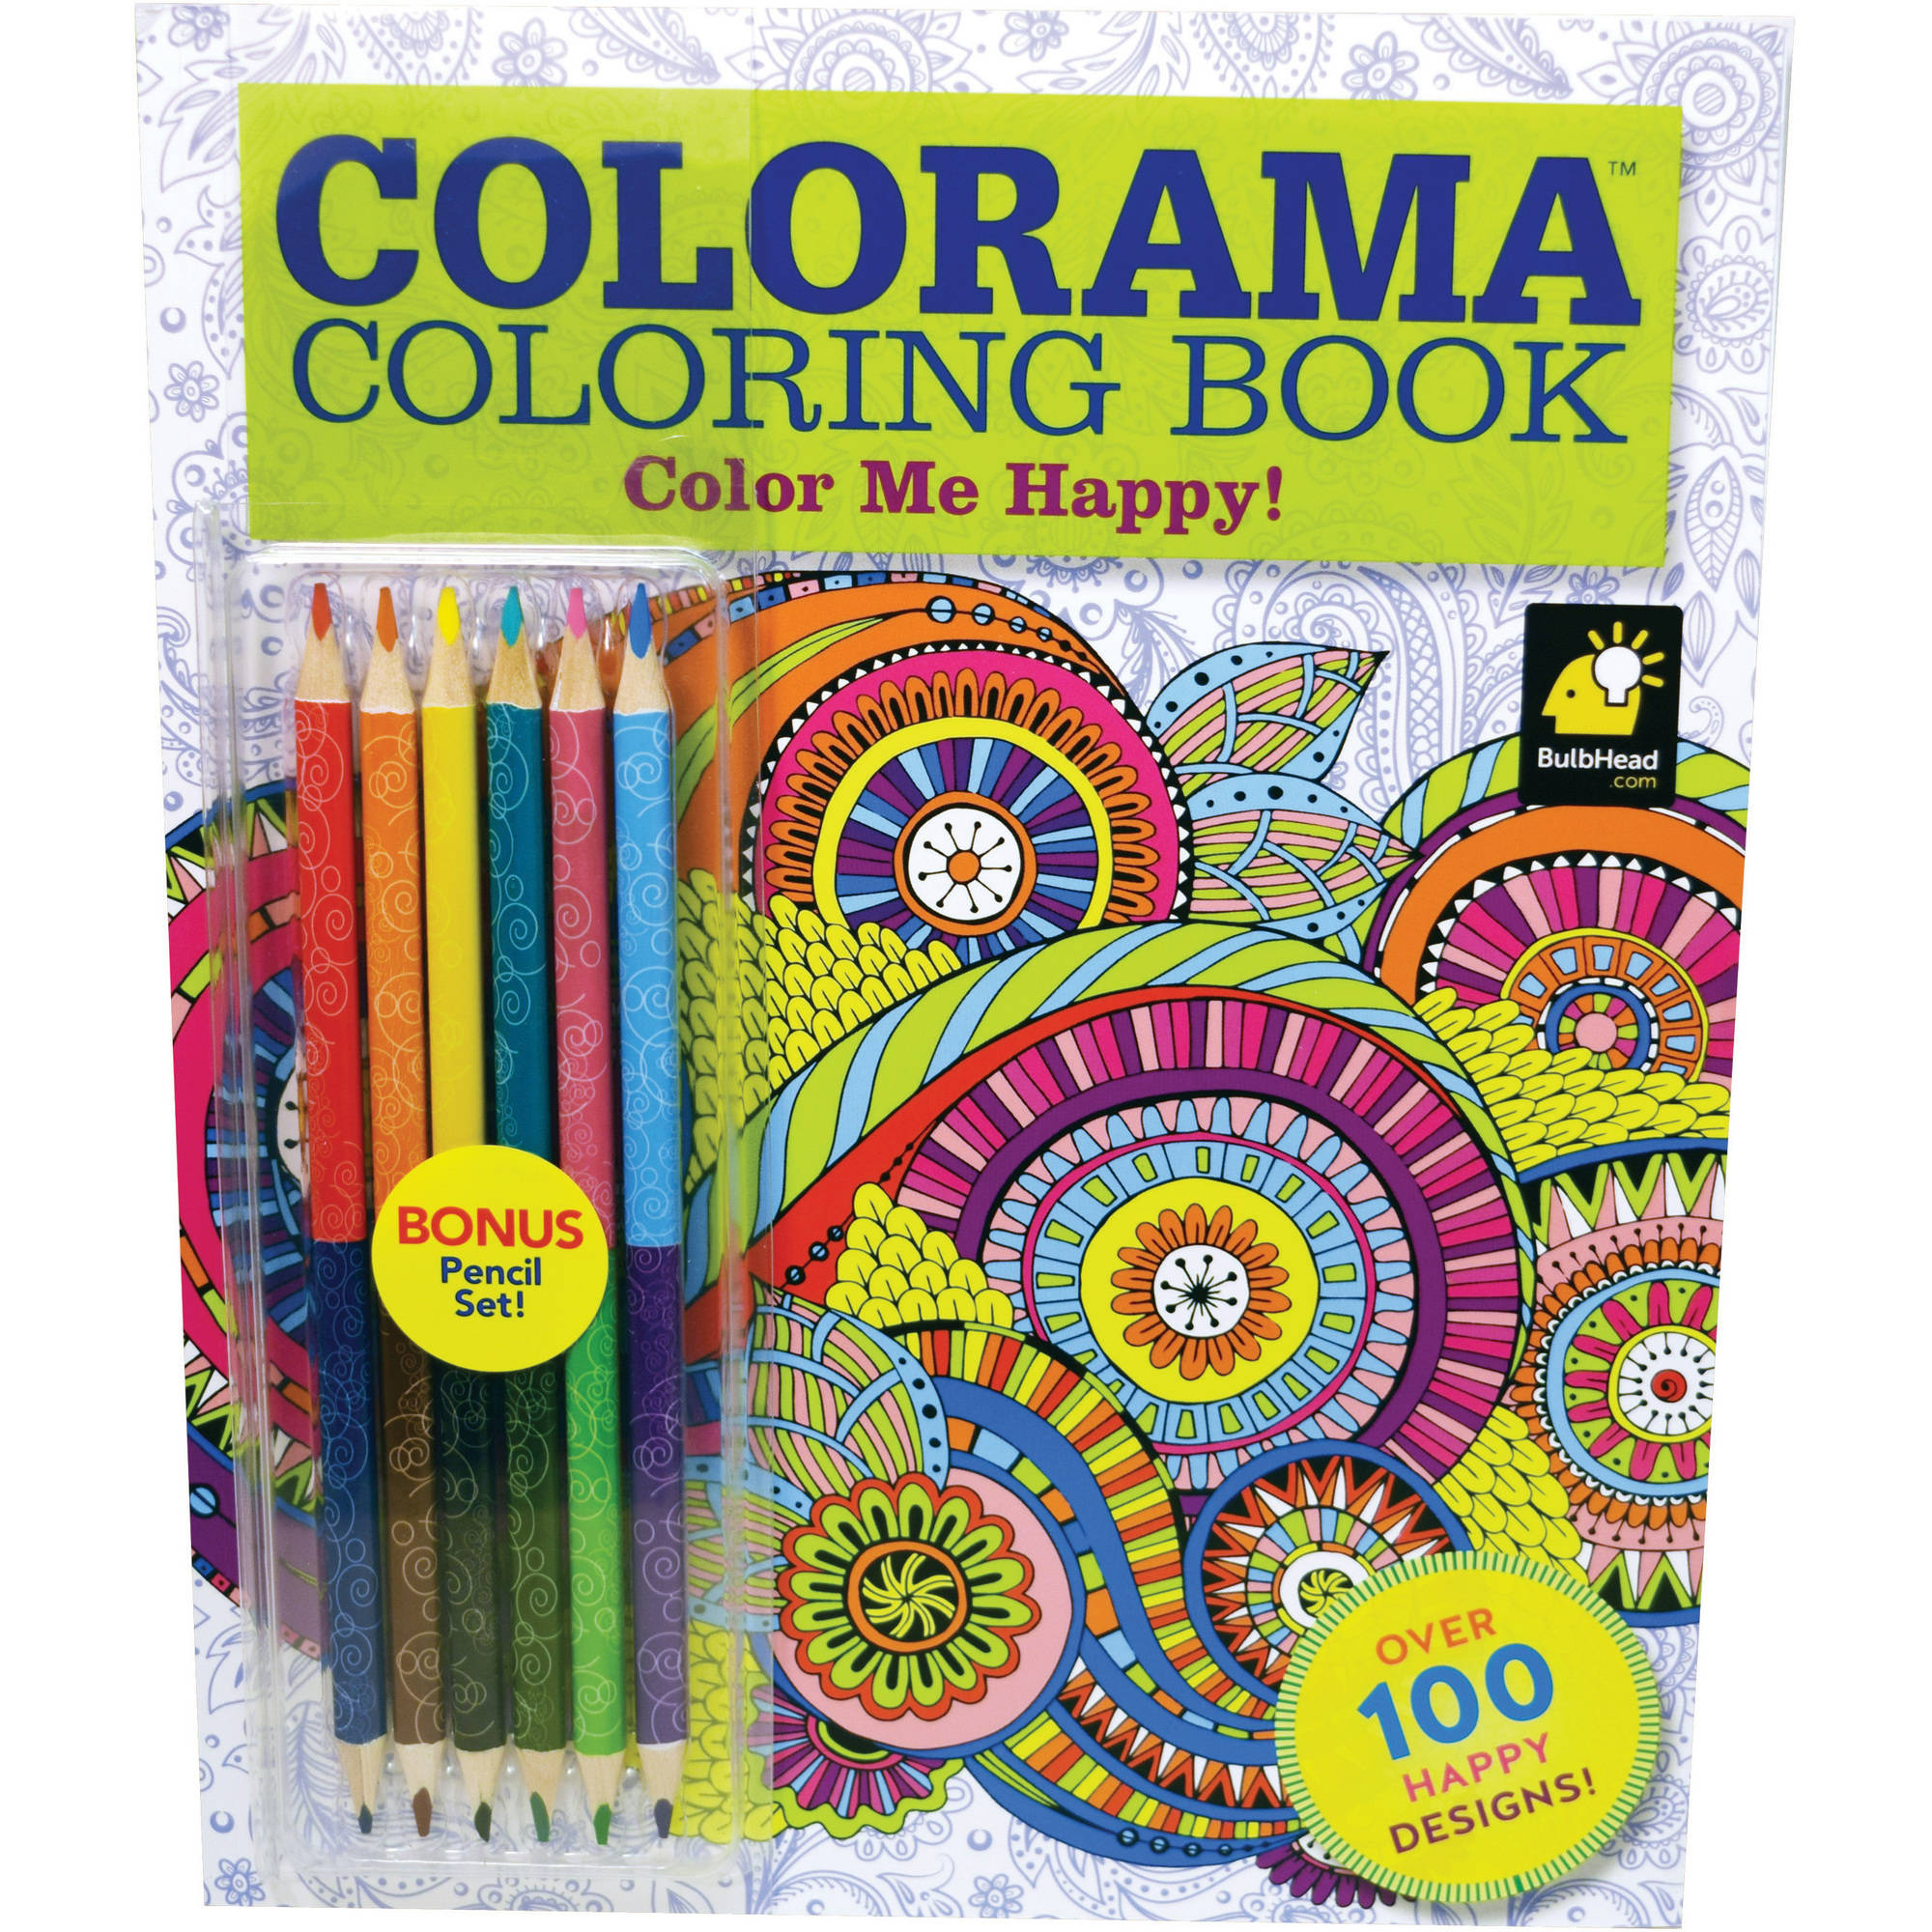 As Seen On Tv Colorama Color Me Happy Coloring Book With Over 100 Designs